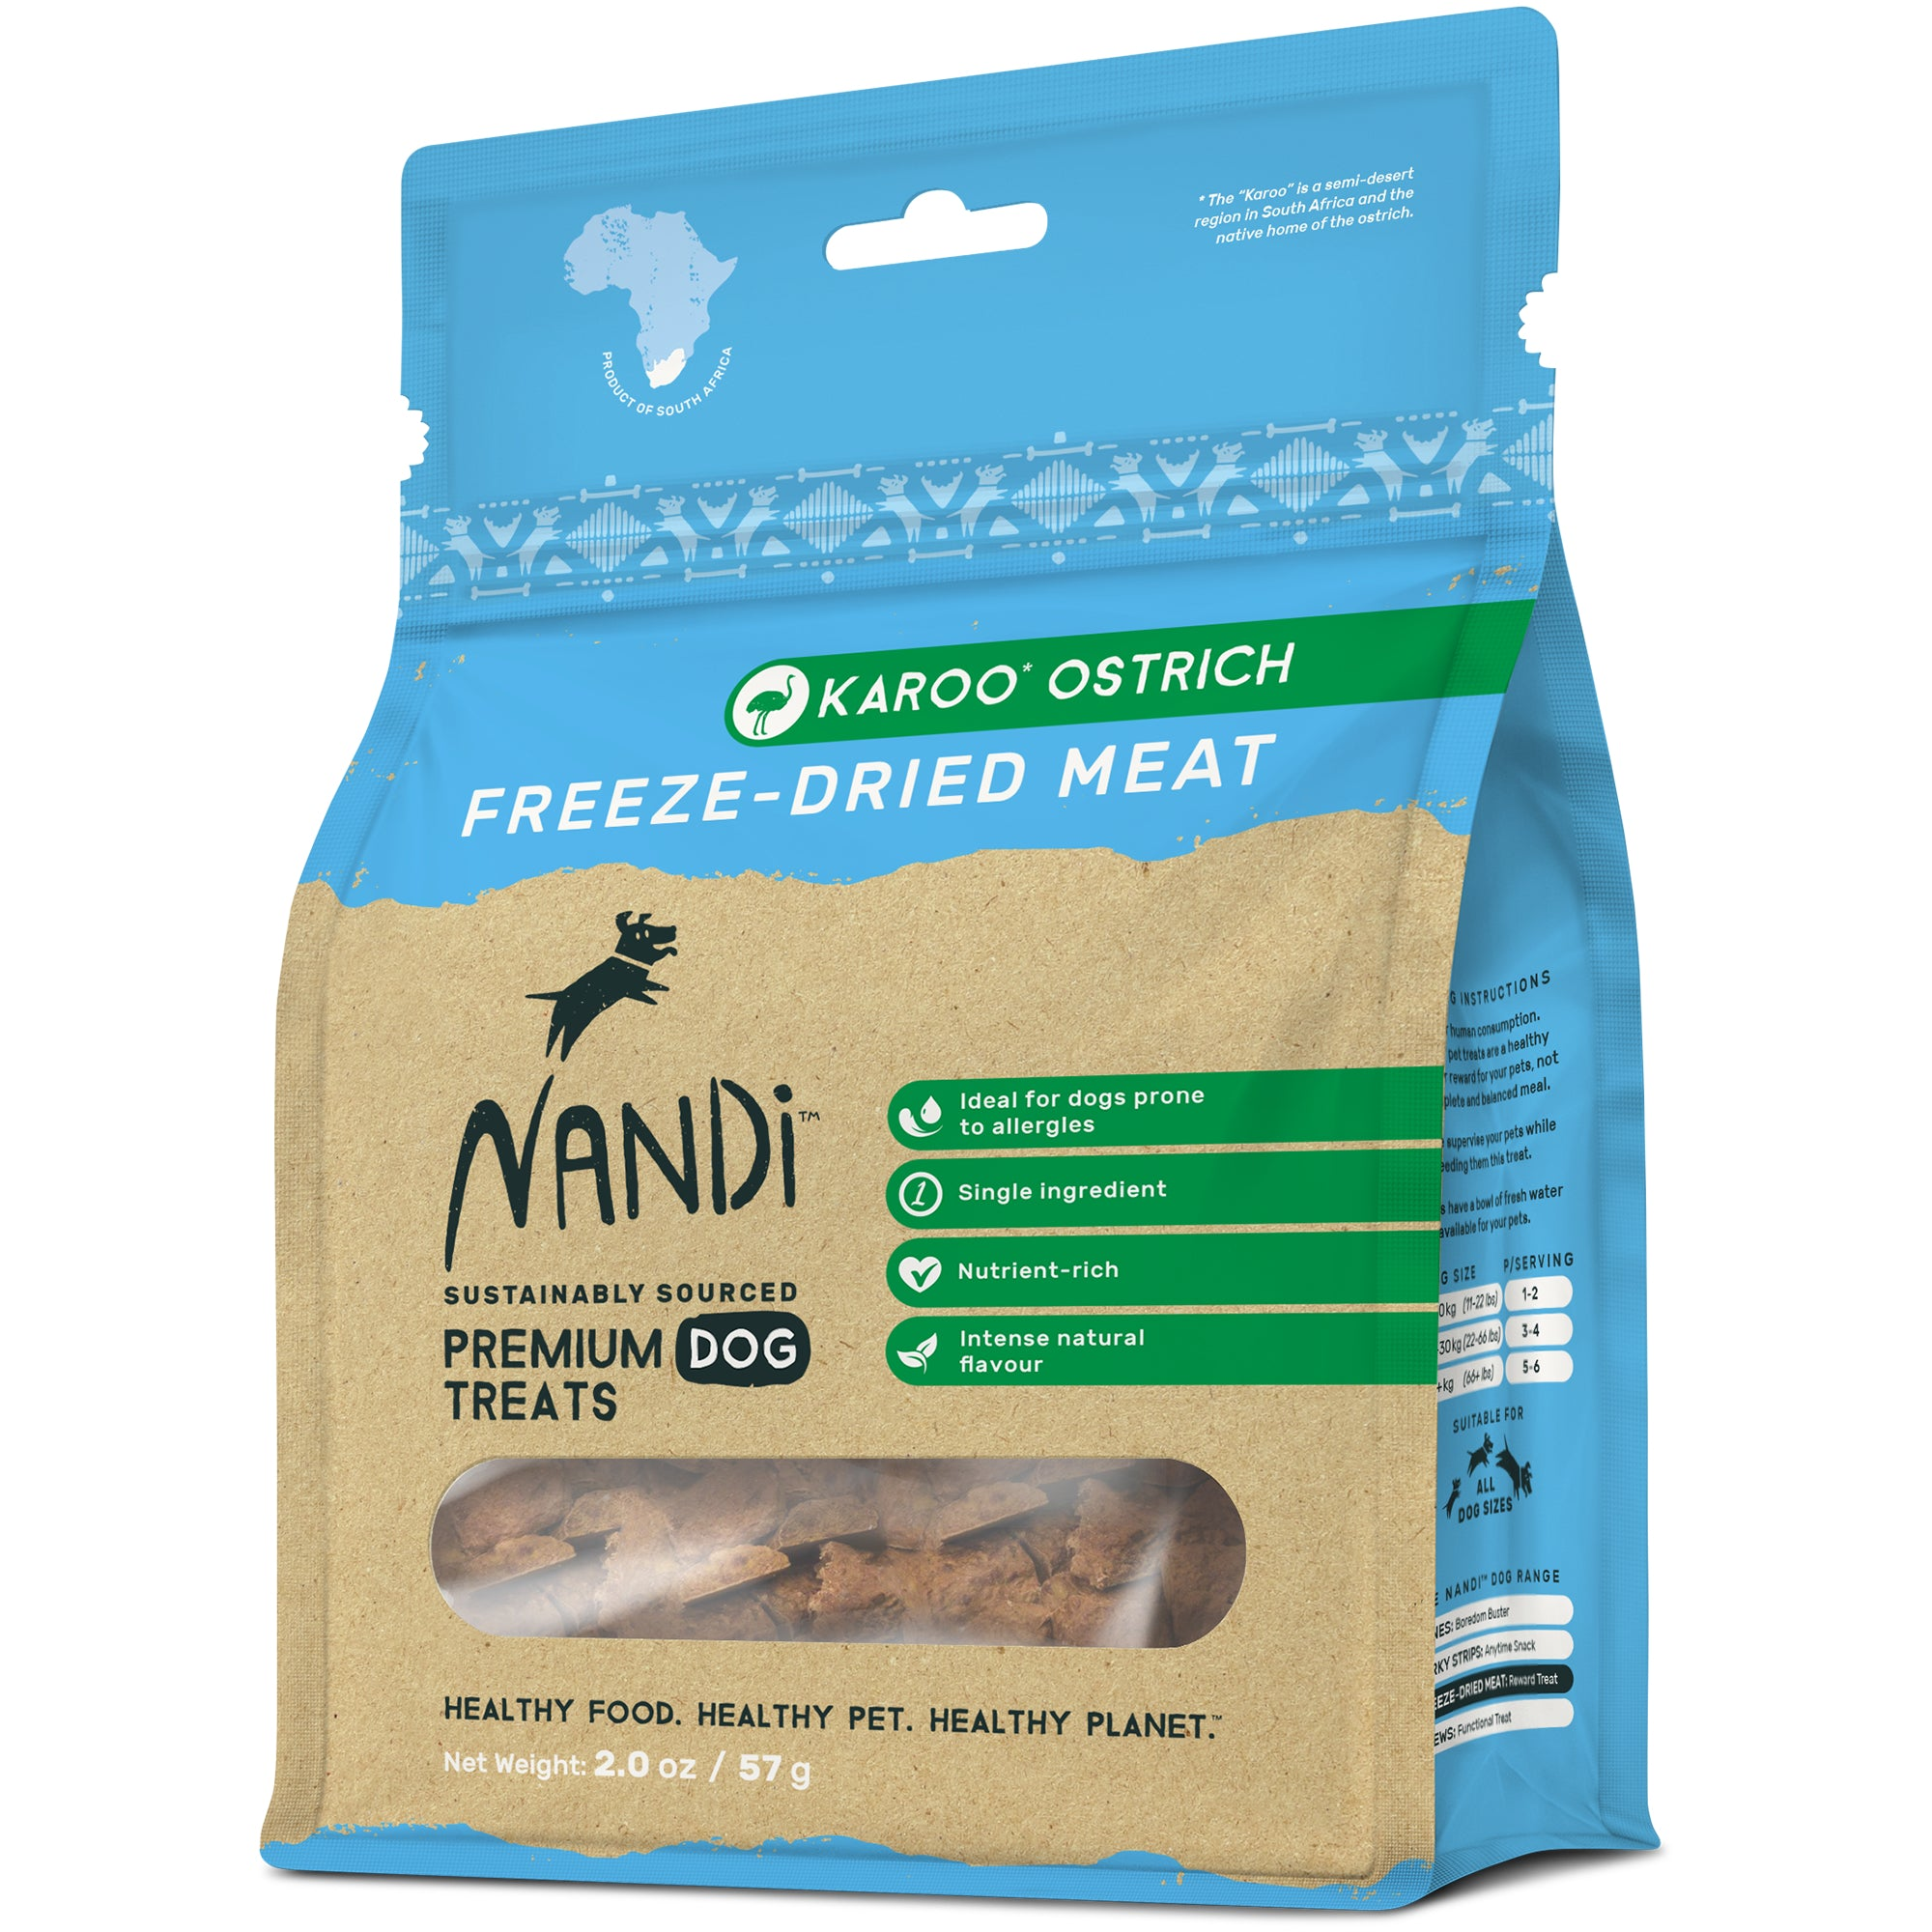 Nandi Freeze Dried Meat Pet Treats  - Karoo Ostrich (57g)